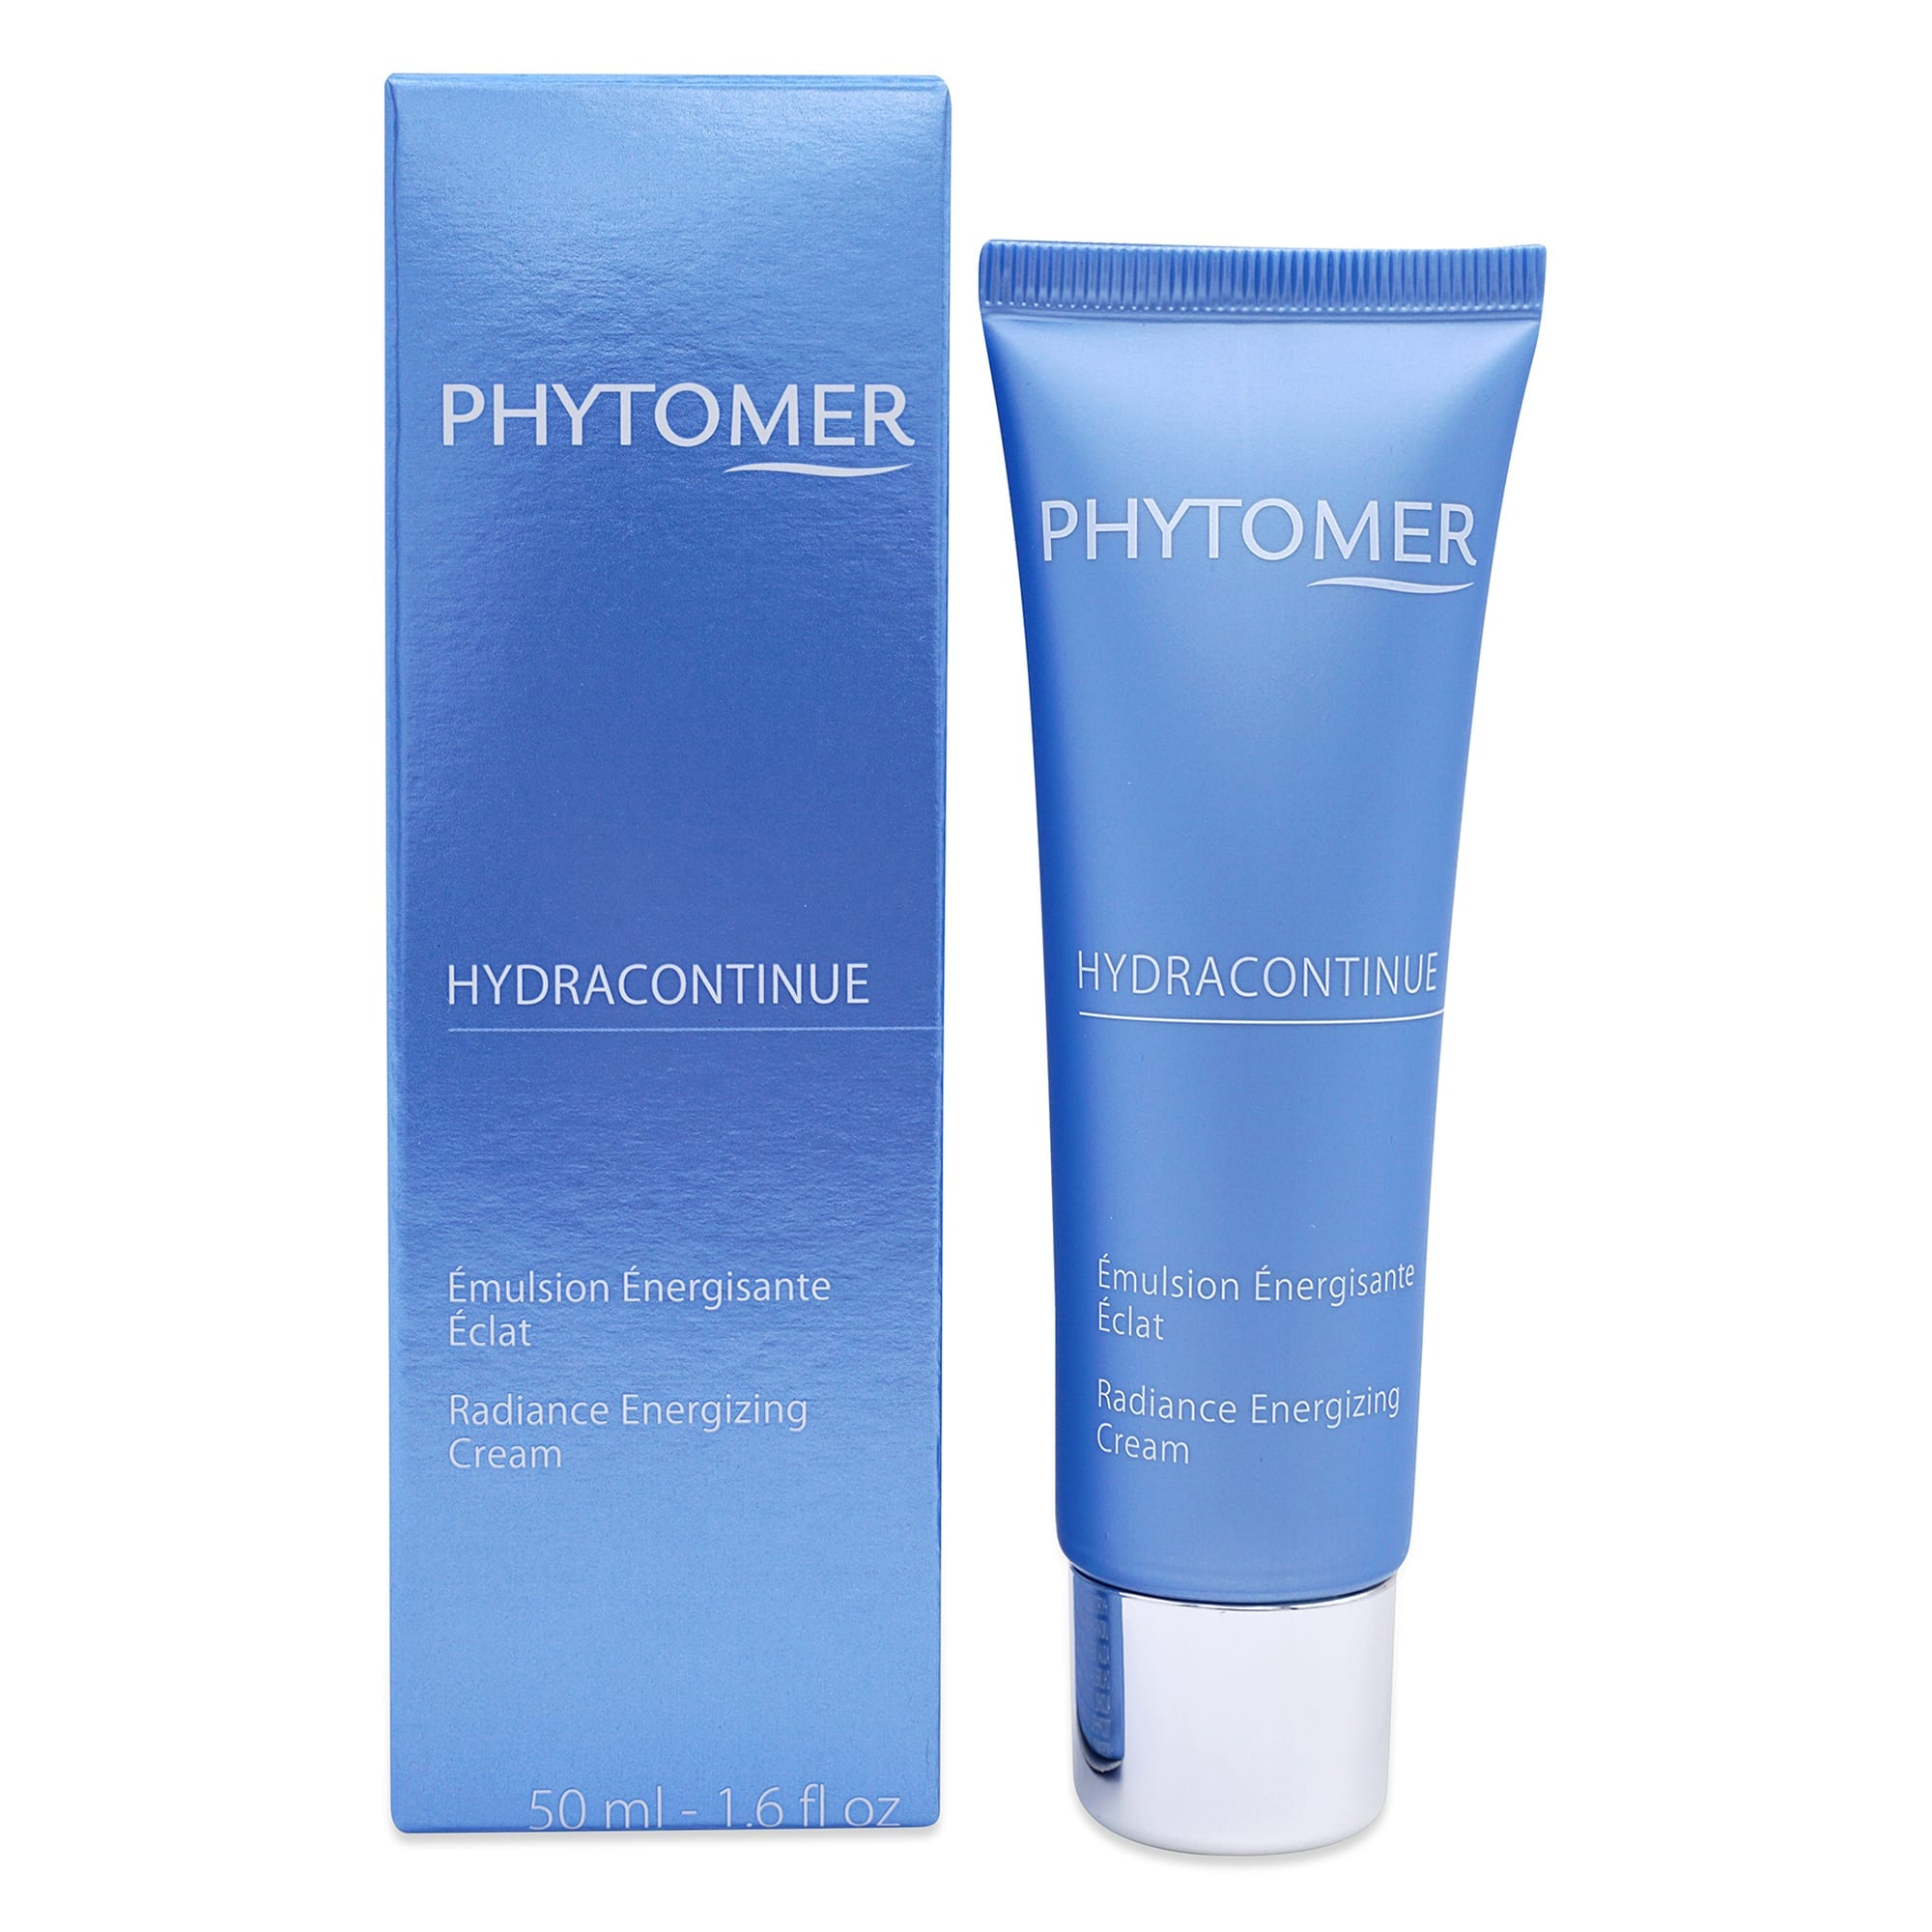 Phytomer Hydracontinue Radiance Energizing Cream, 1.6 oz.